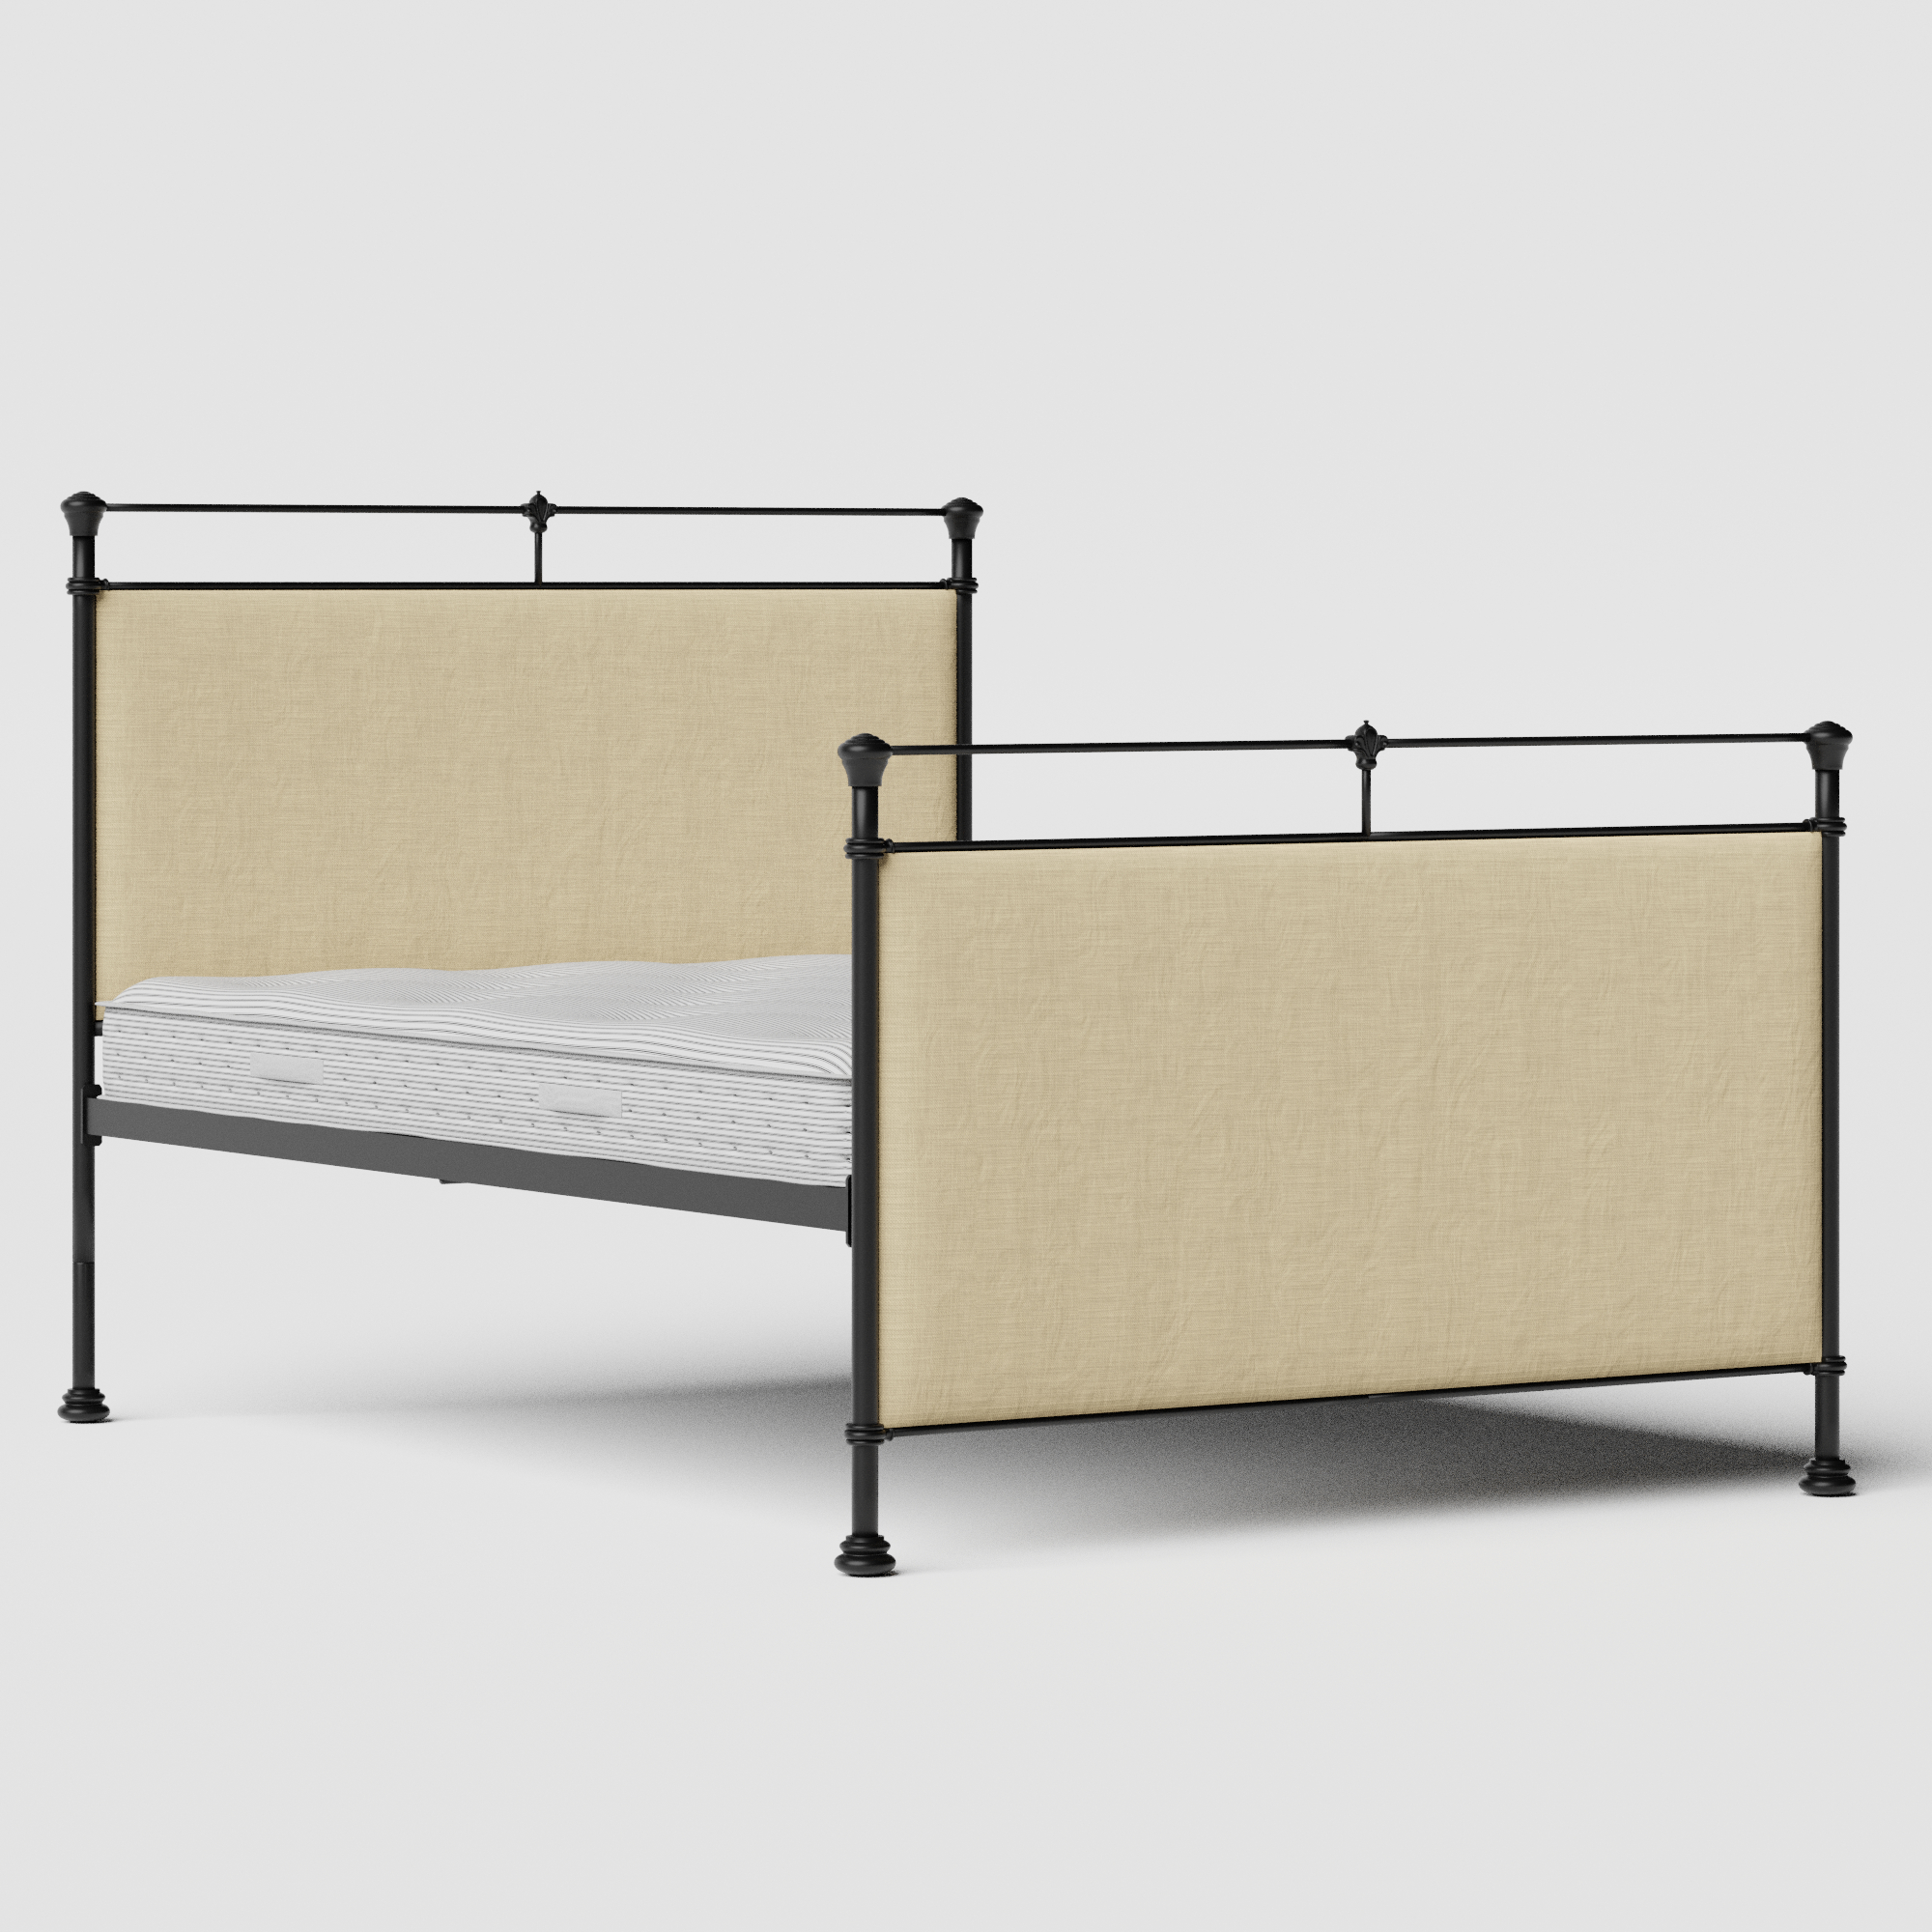 Lille iron/metal upholstered bed in black with natural fabric